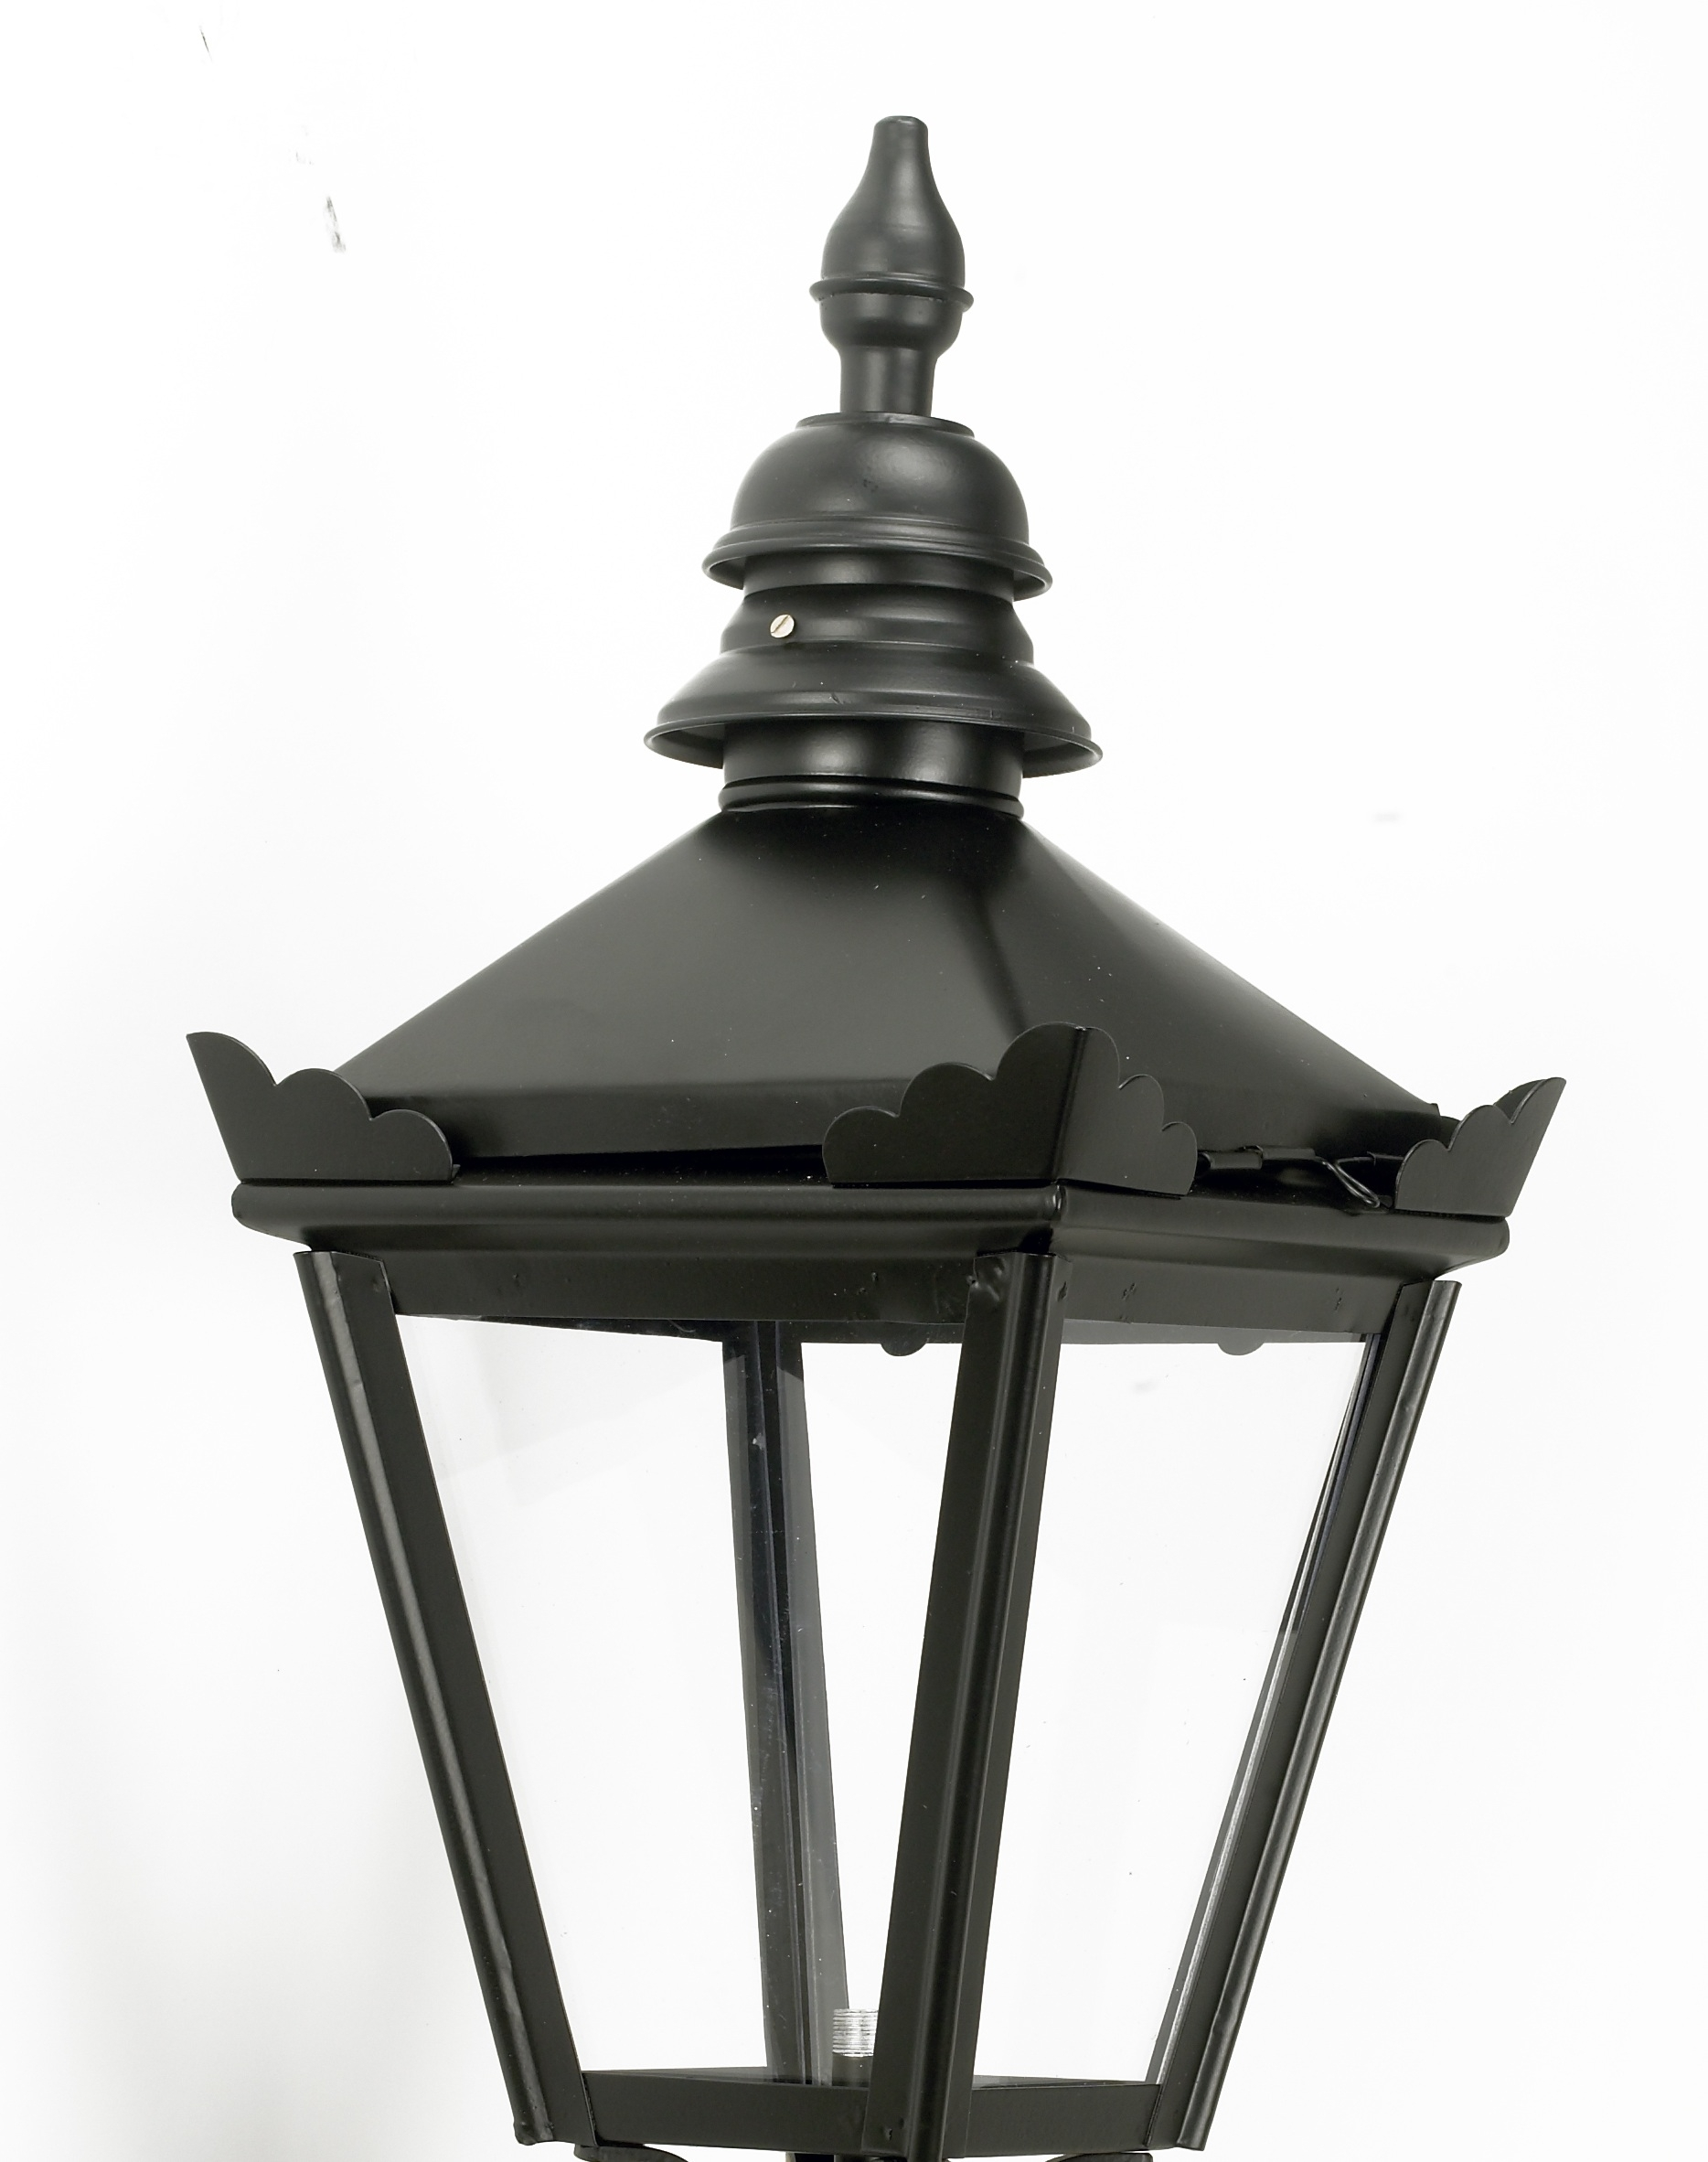 Medium Copper Victorian Wall Lantern With Ornate Bracket   The With Victorian Outdoor Lanterns (View 18 of 20)